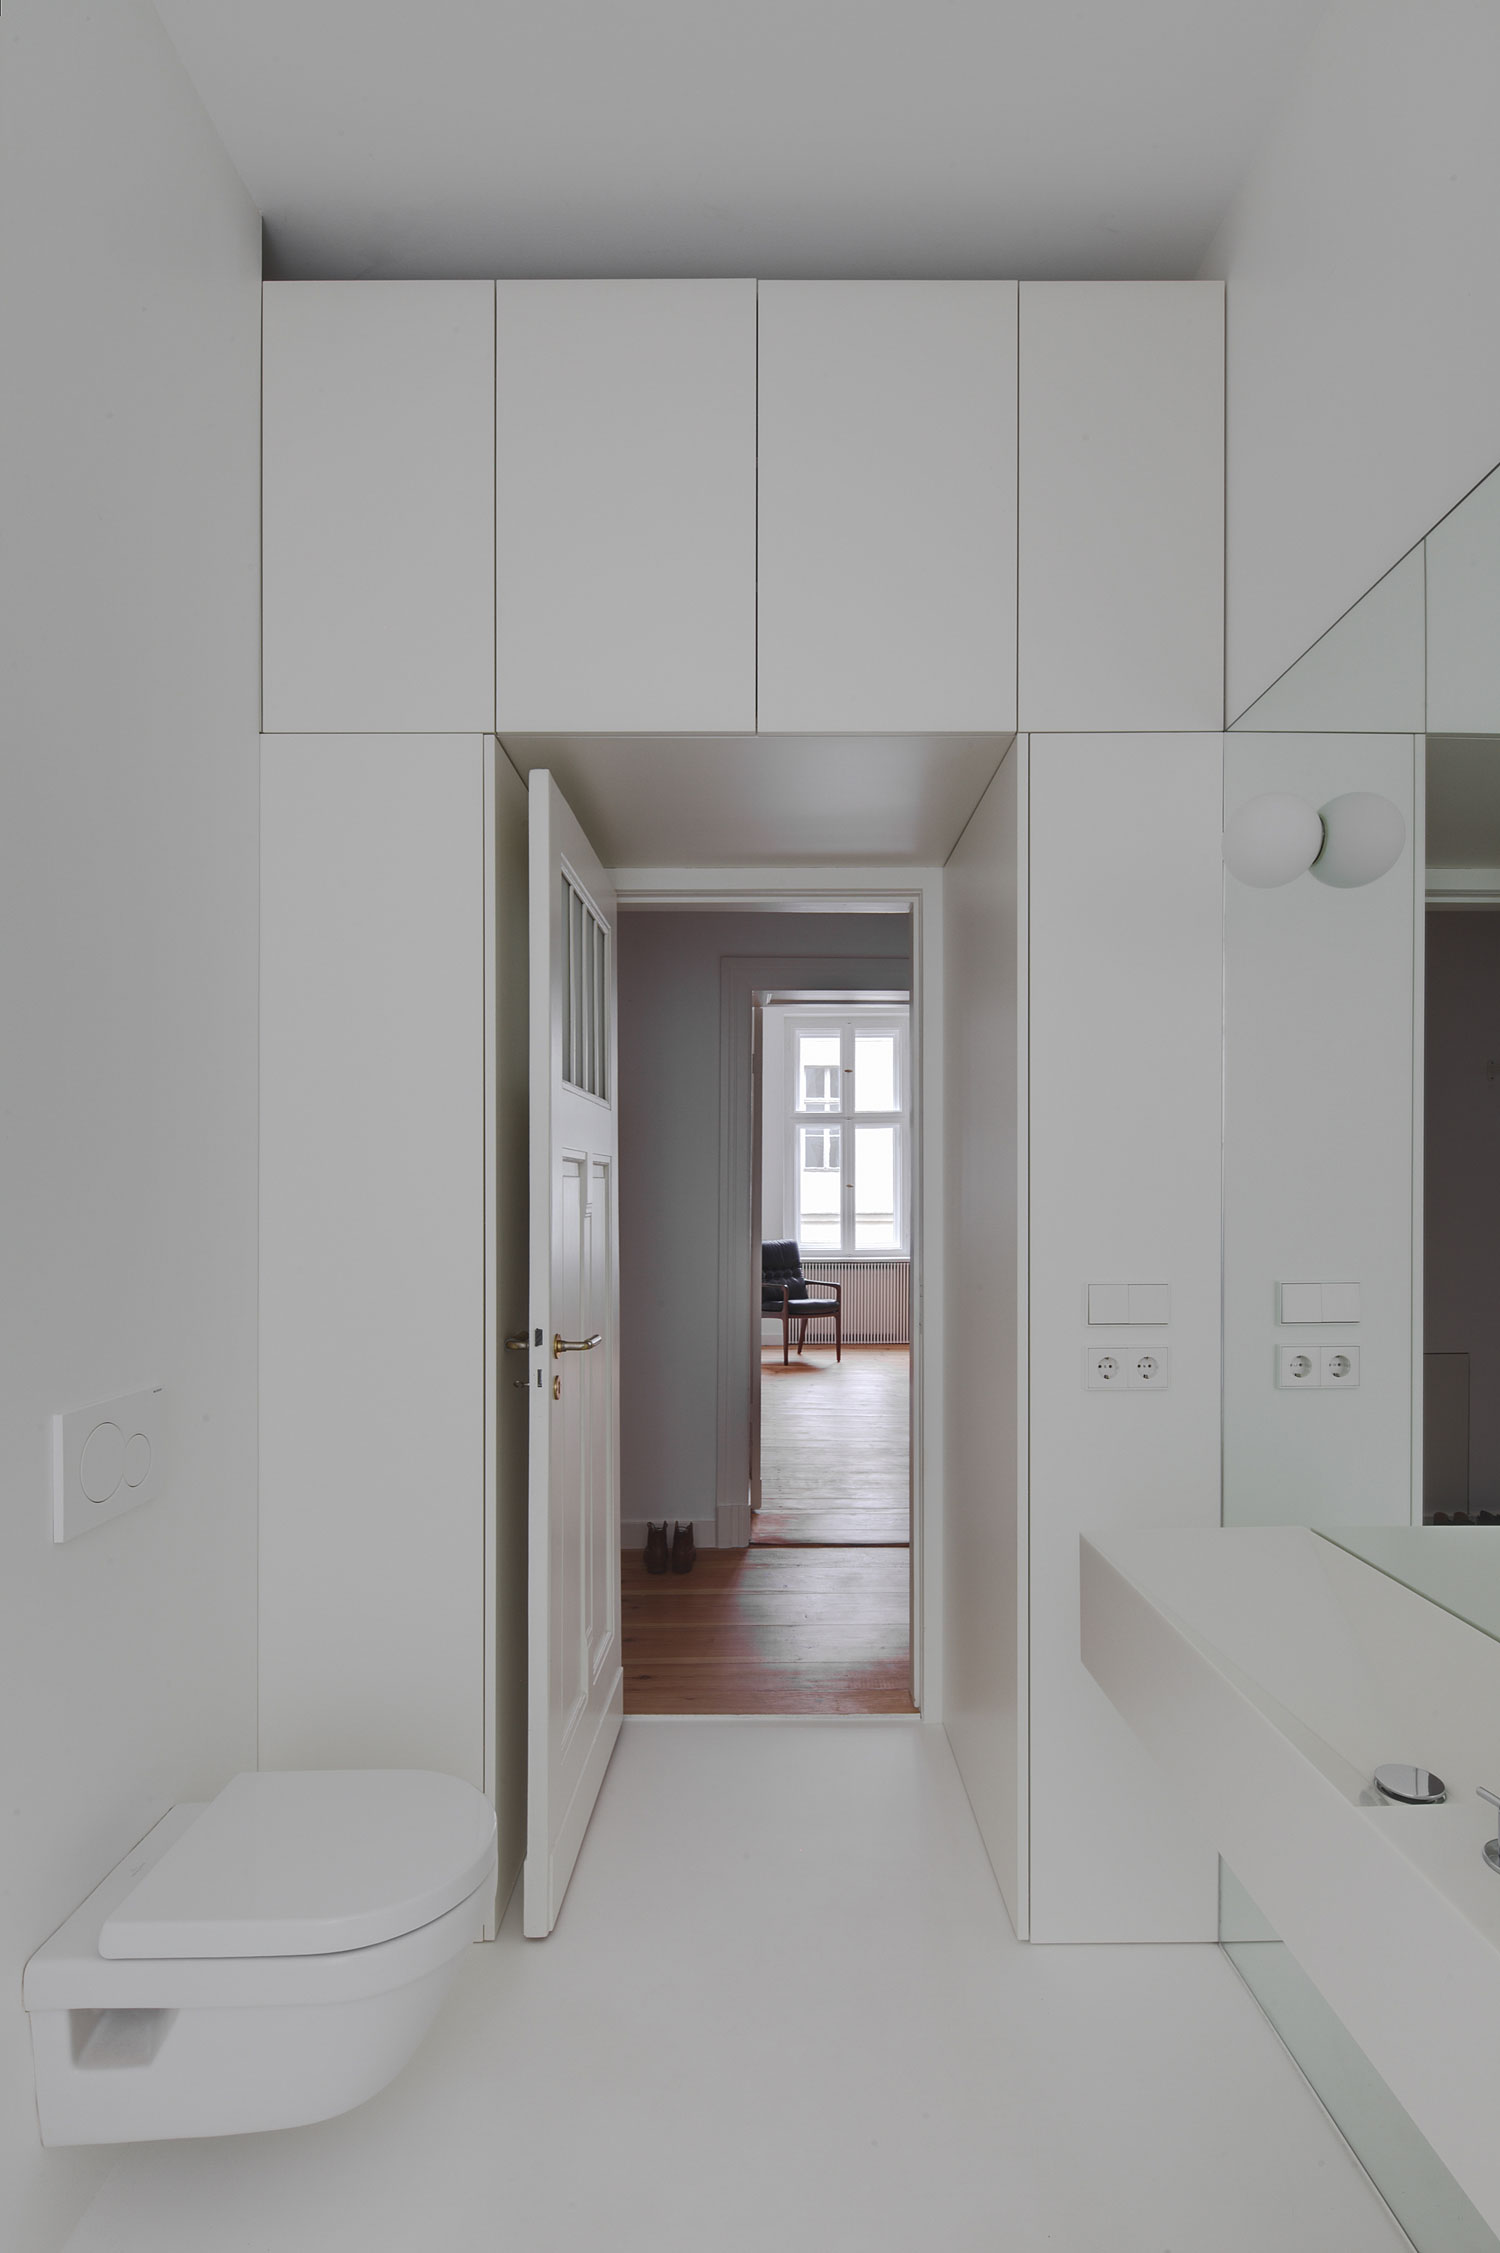 Berlin Mitte Apartment Refurbishment by Atheorem | Yellowtrace